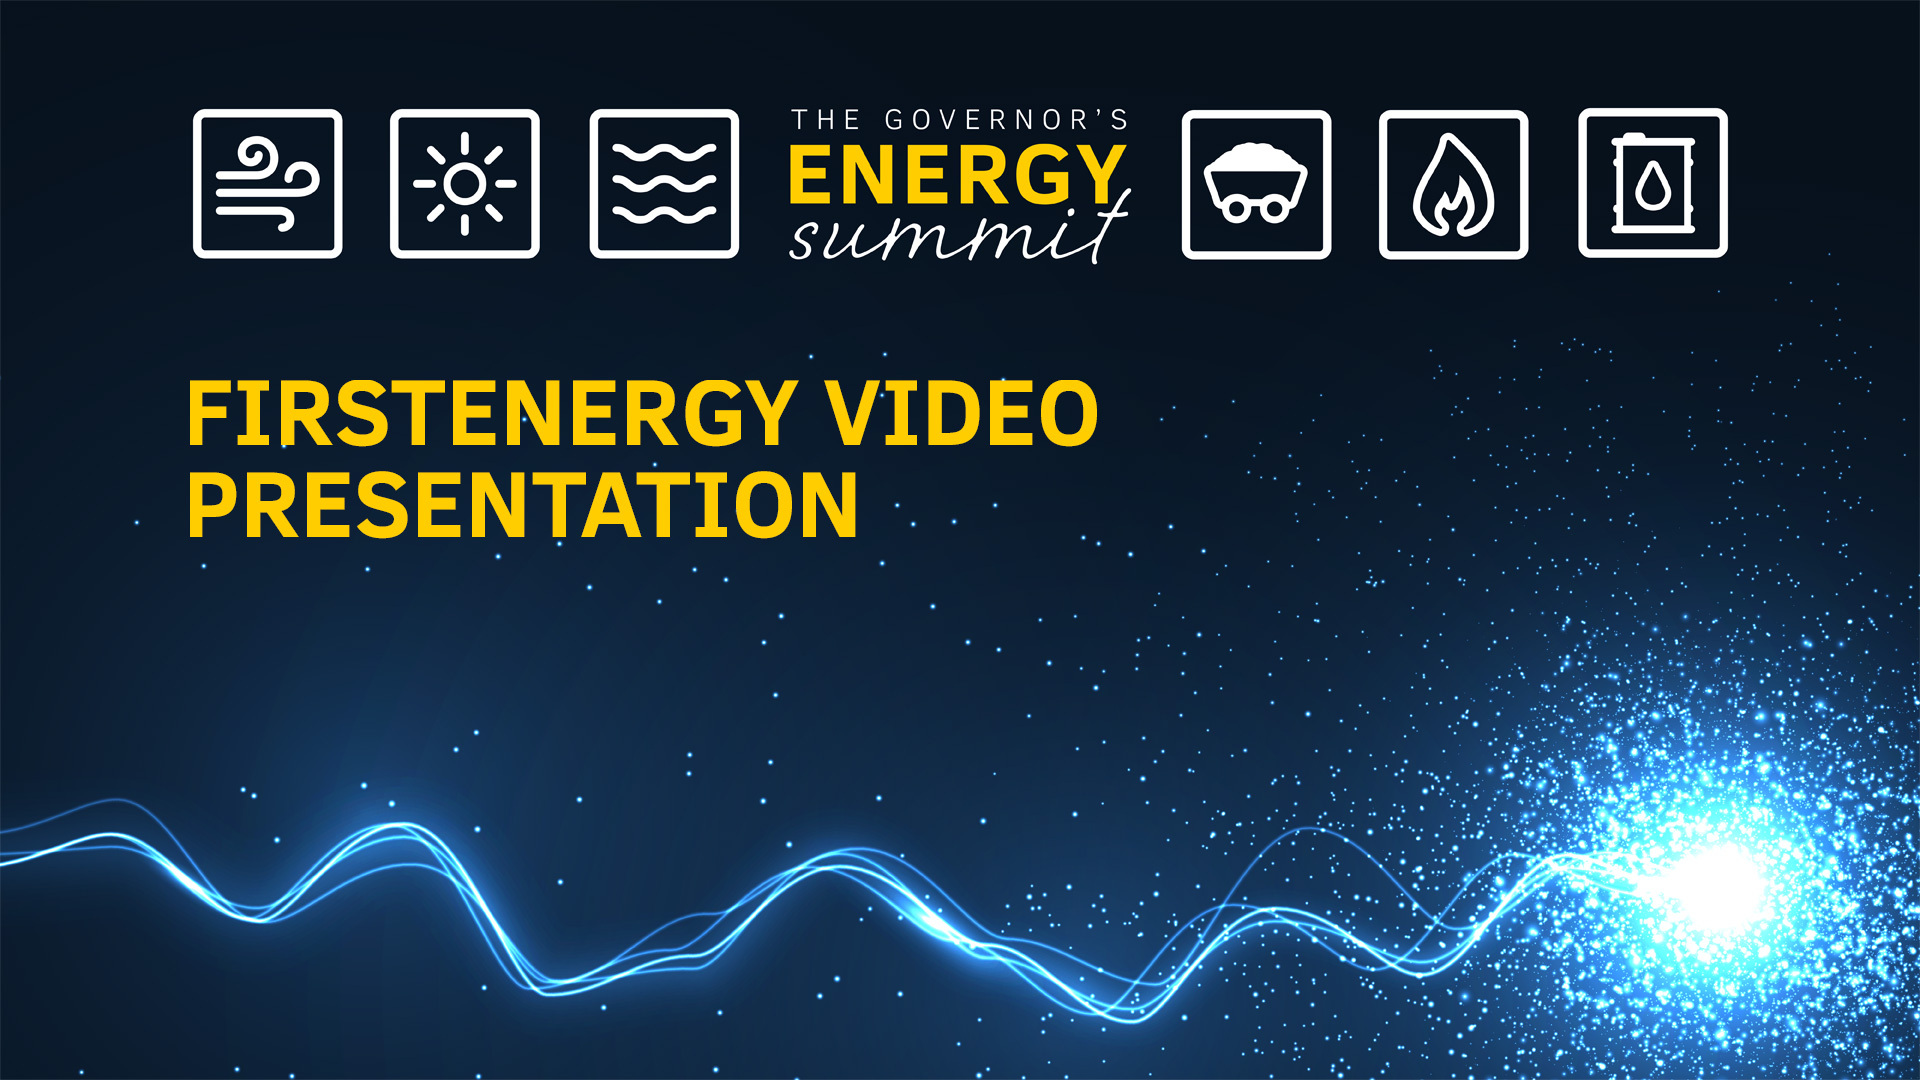 FirstEnergy Video Presentation